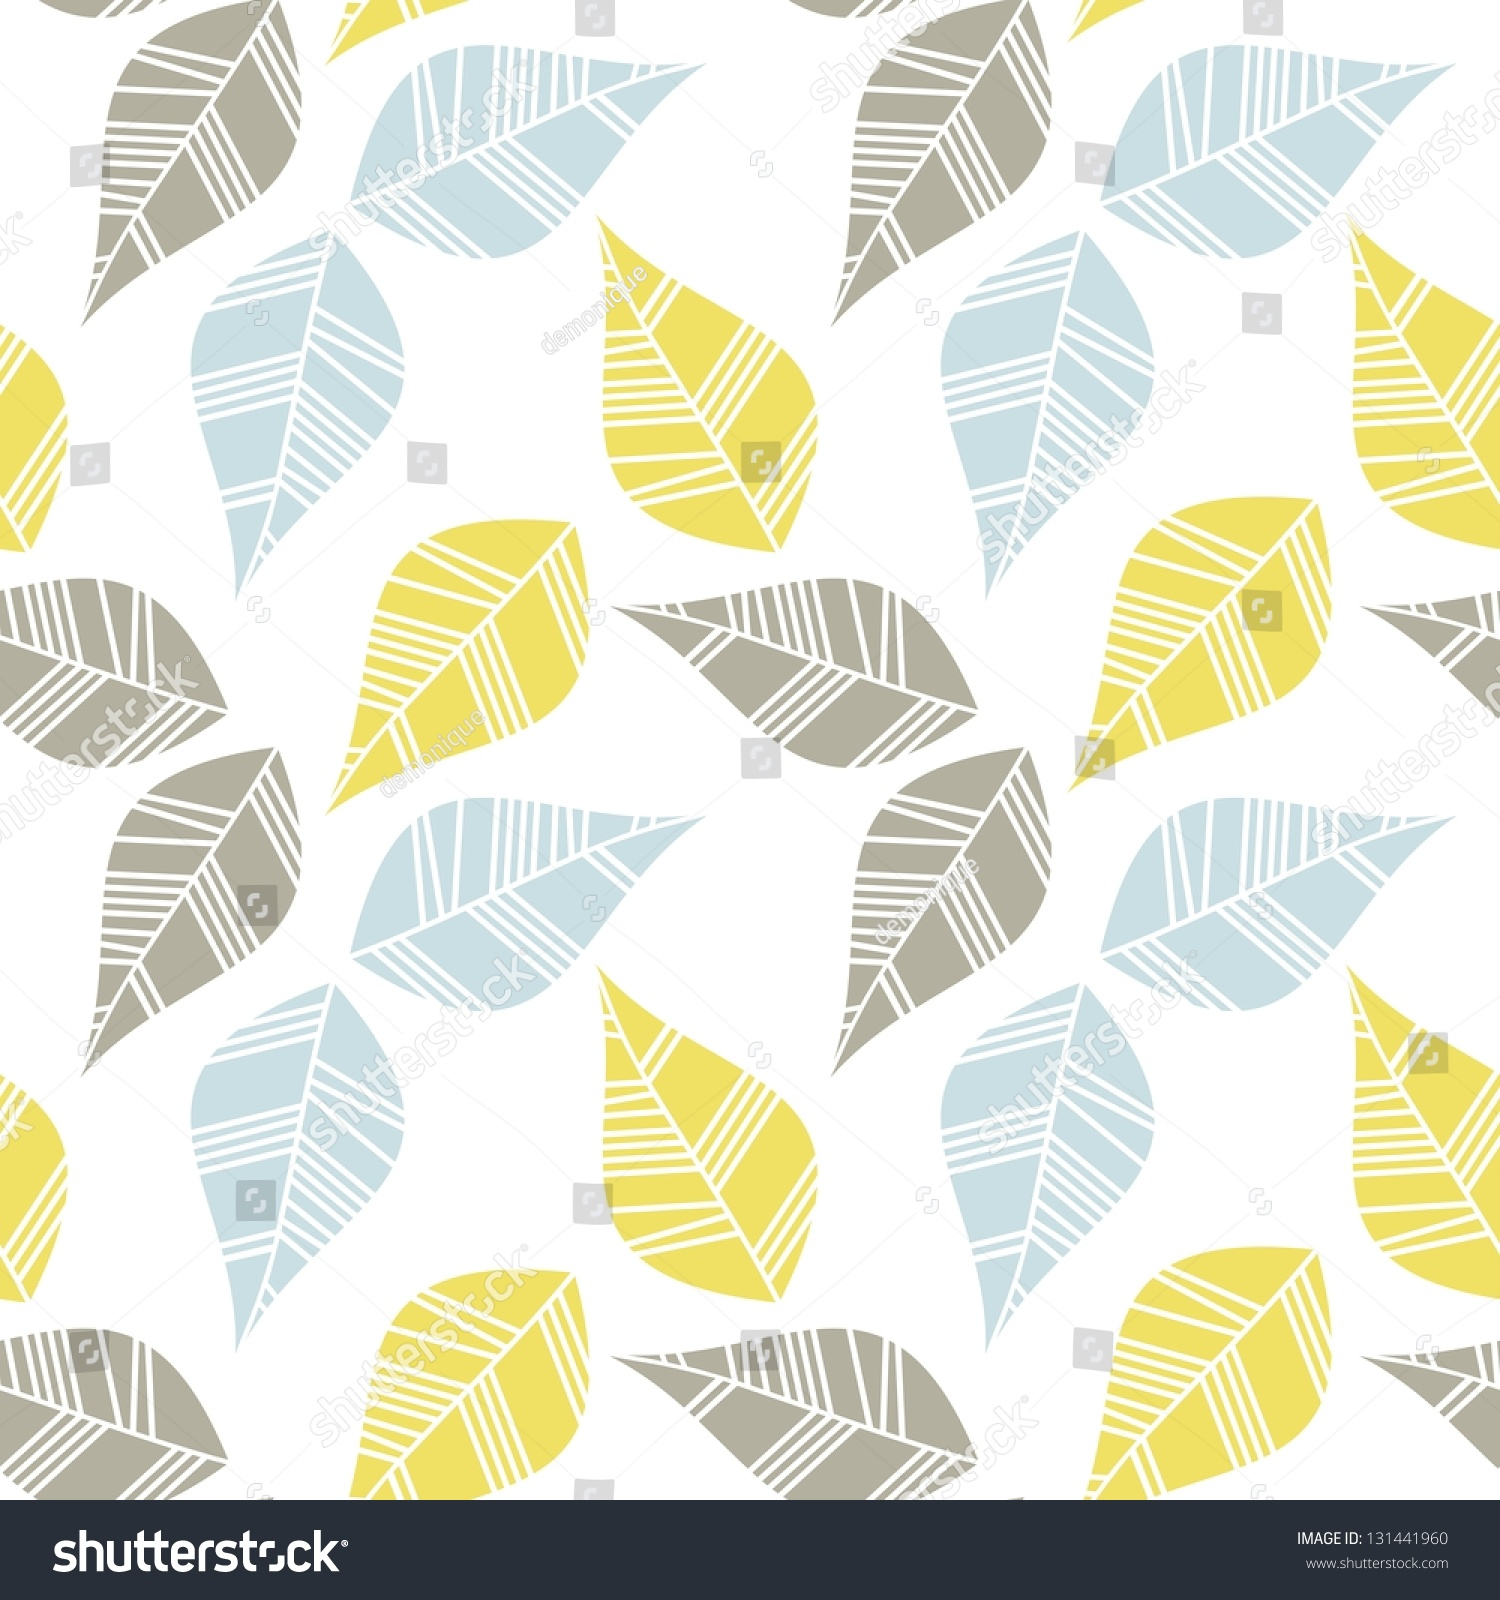 Yellow and white pattern background - photo#13